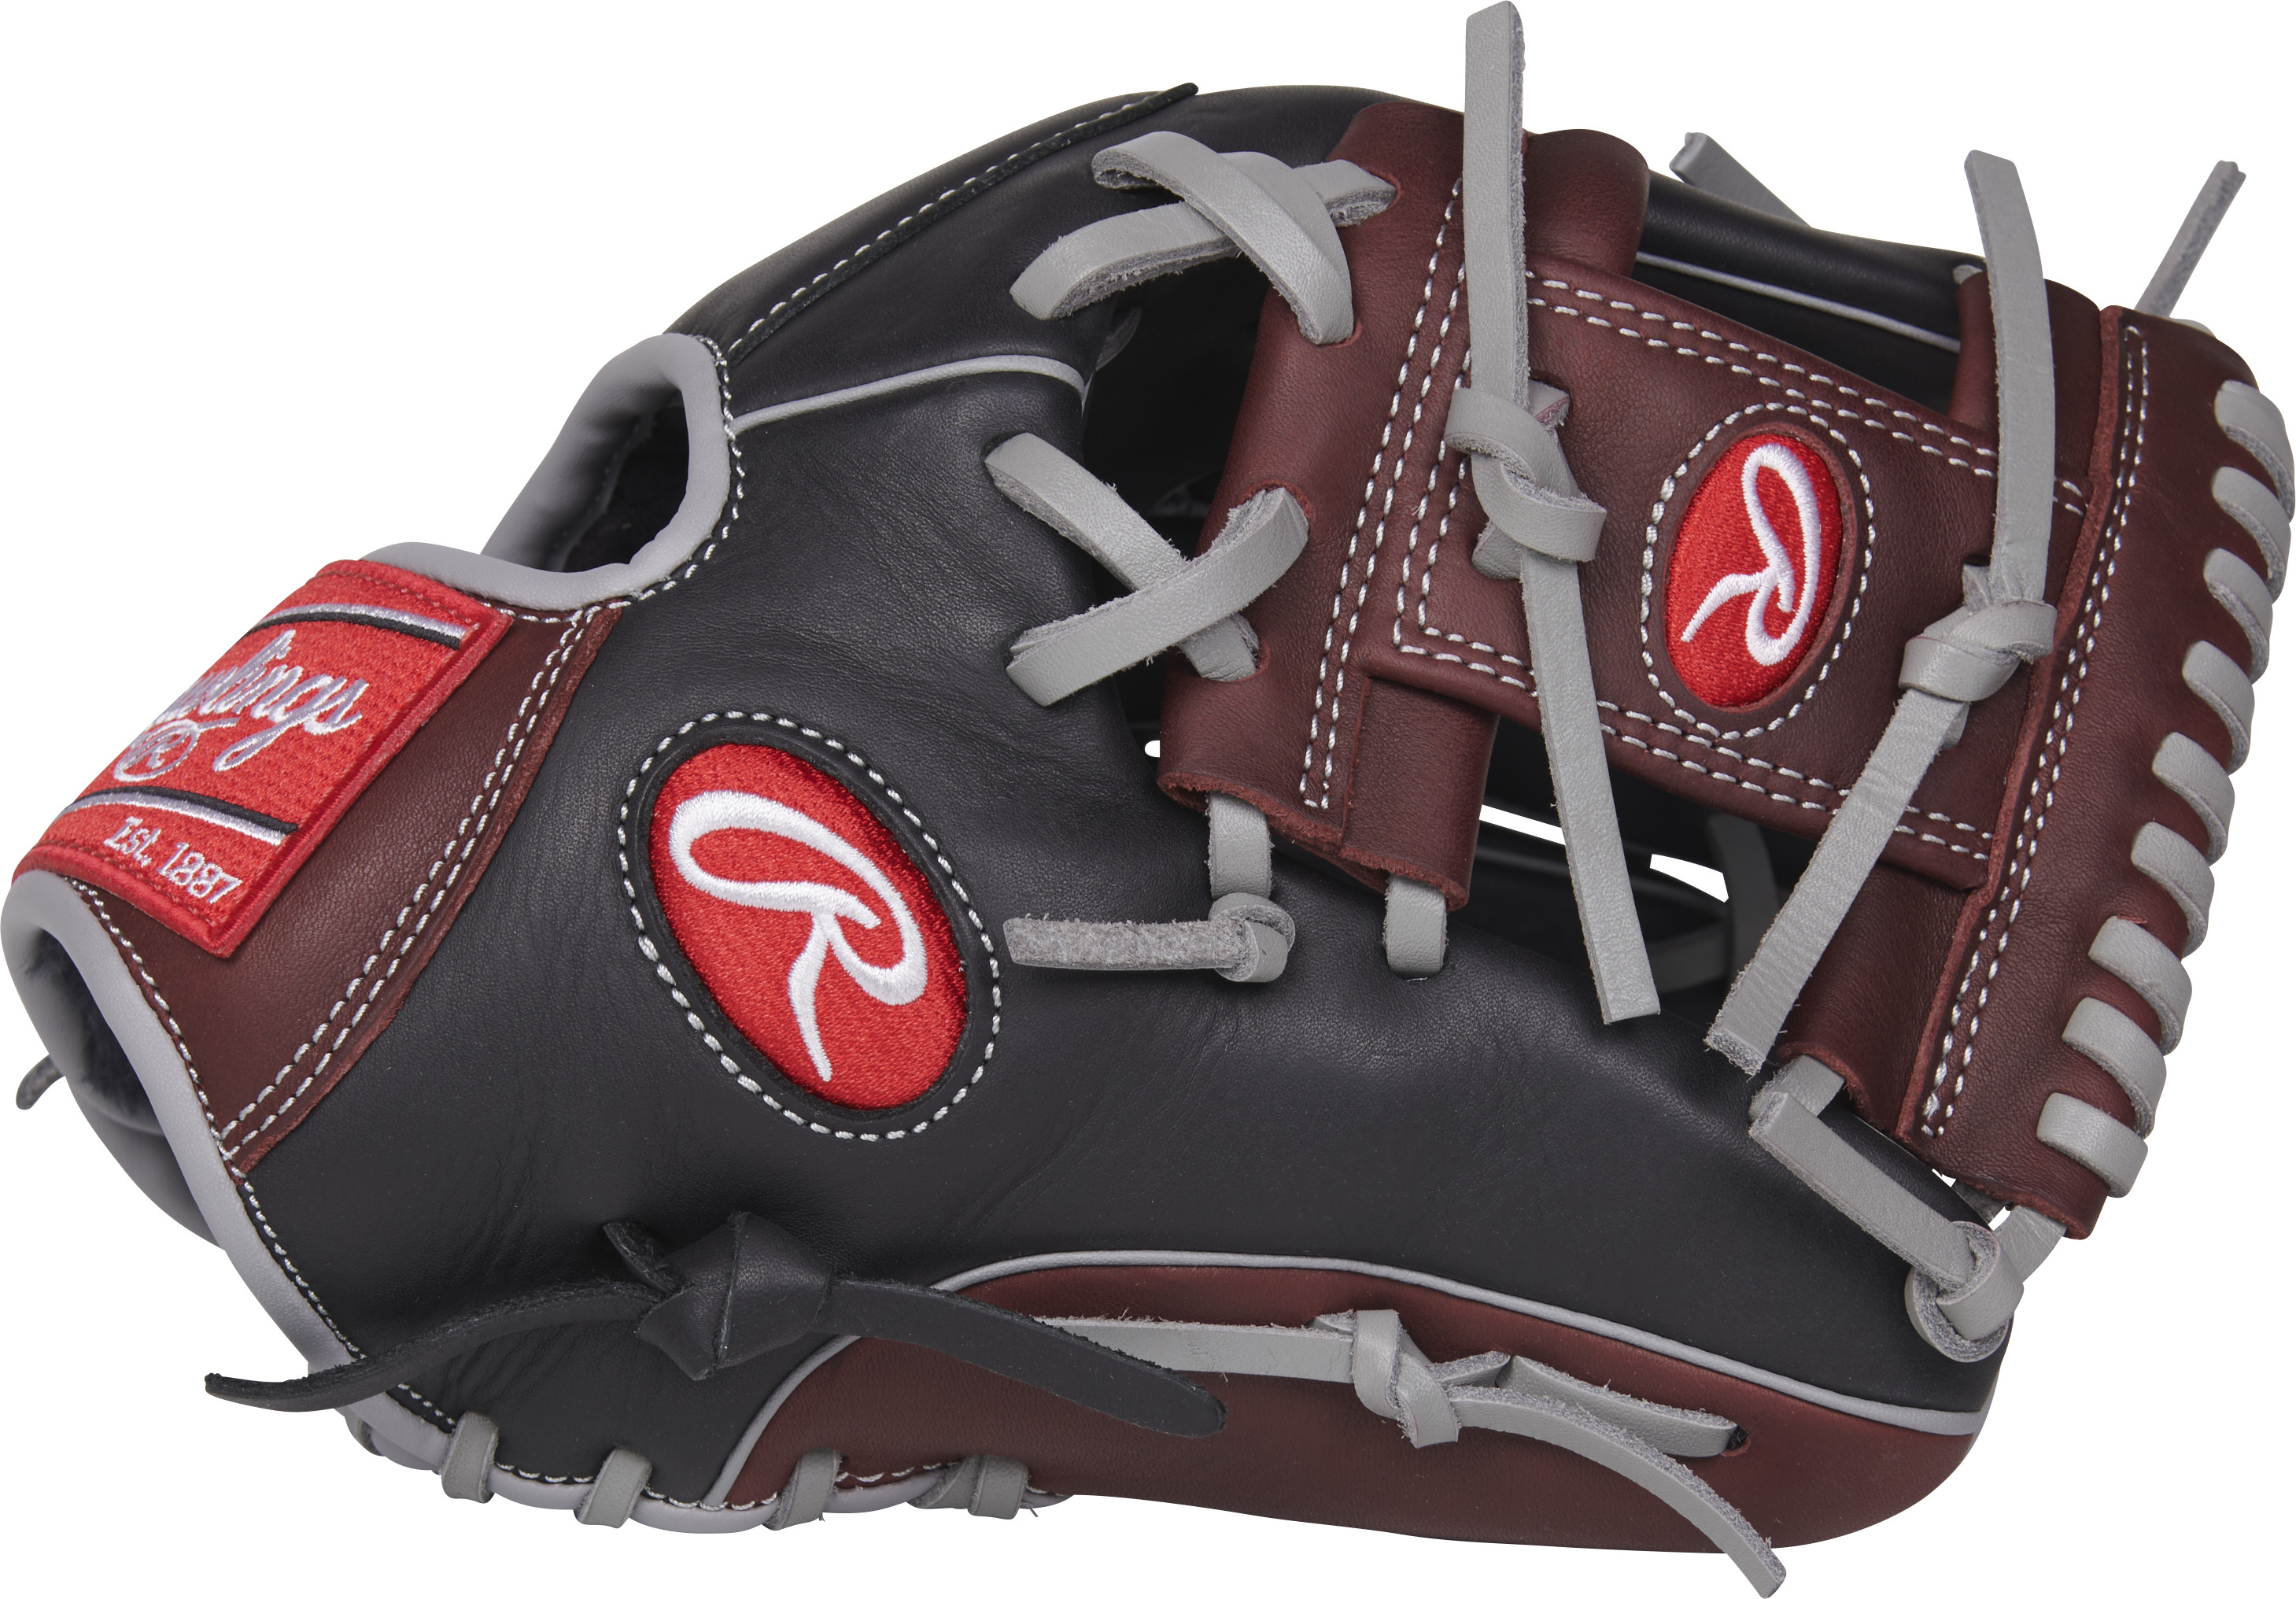 http://www.bestbatdeals.com/images/gloves/rawlings/R9204-2BSG-3.jpg